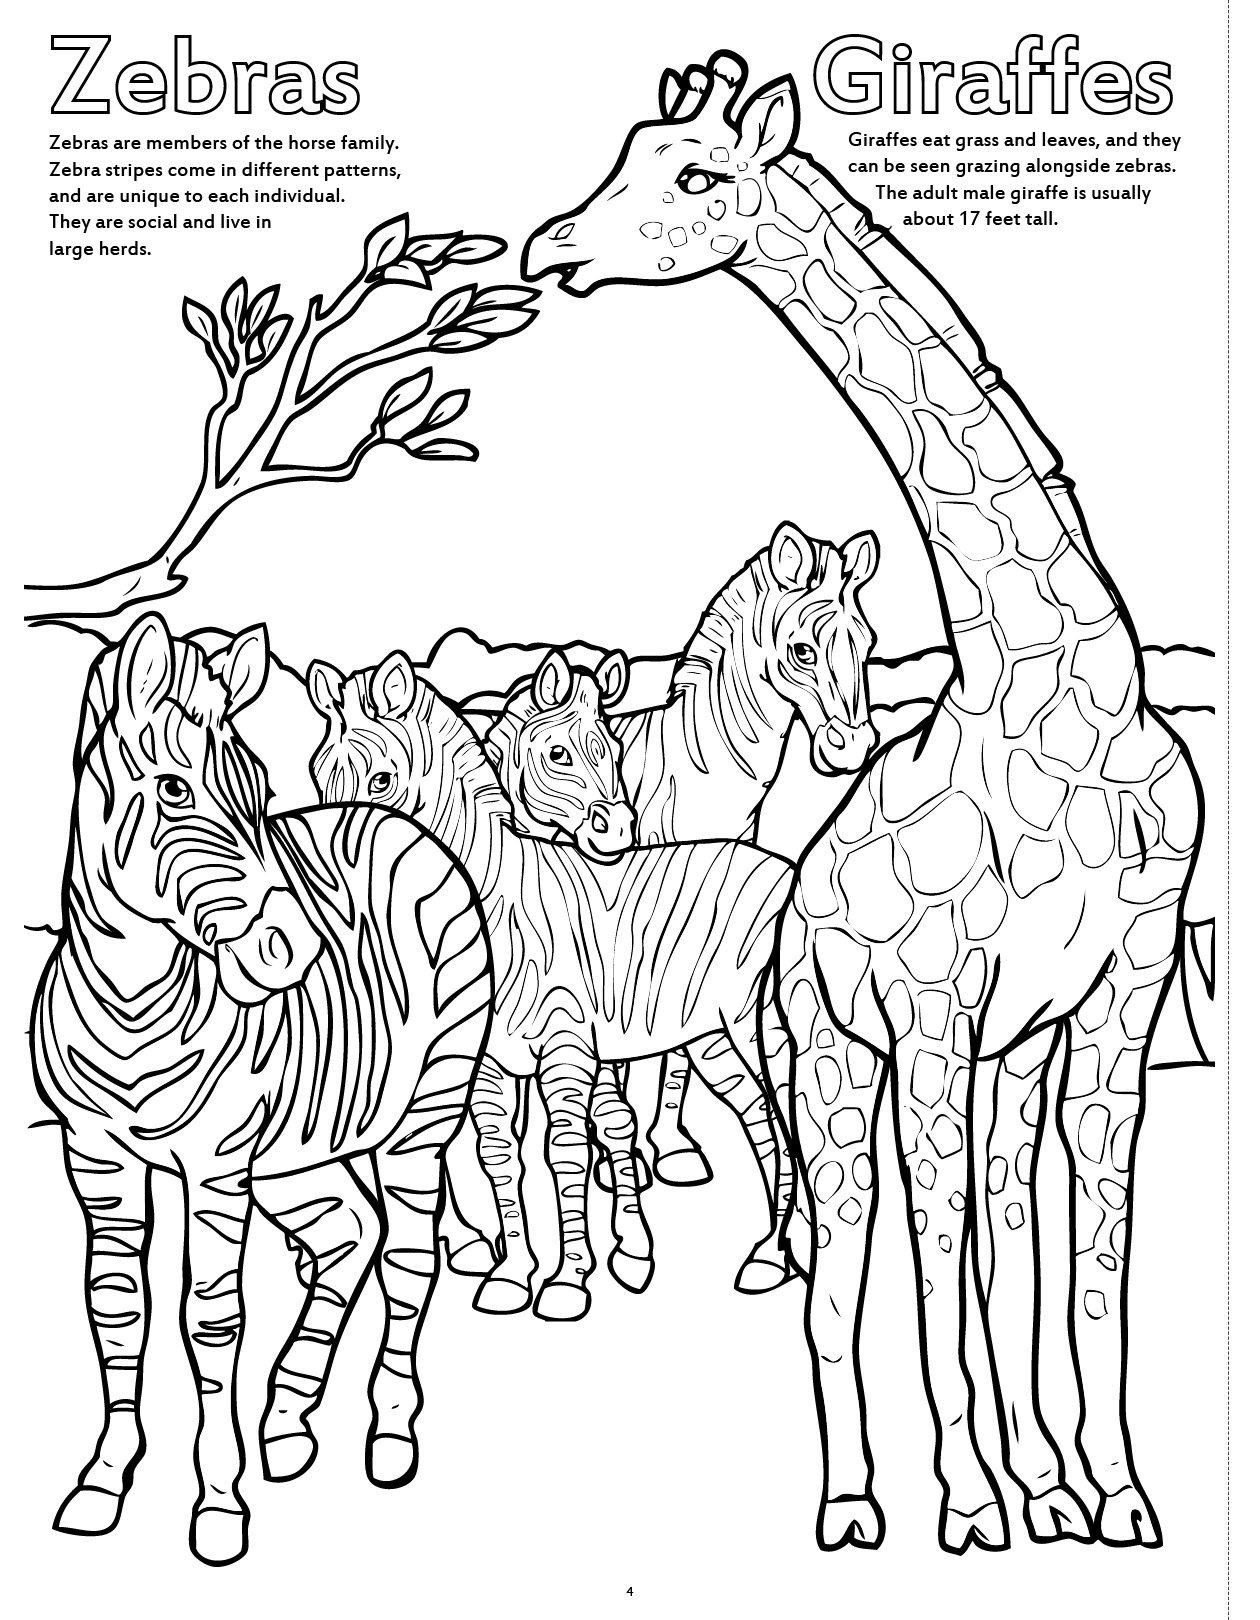 zoo animals giant super jumbo coloring book coloringbook com